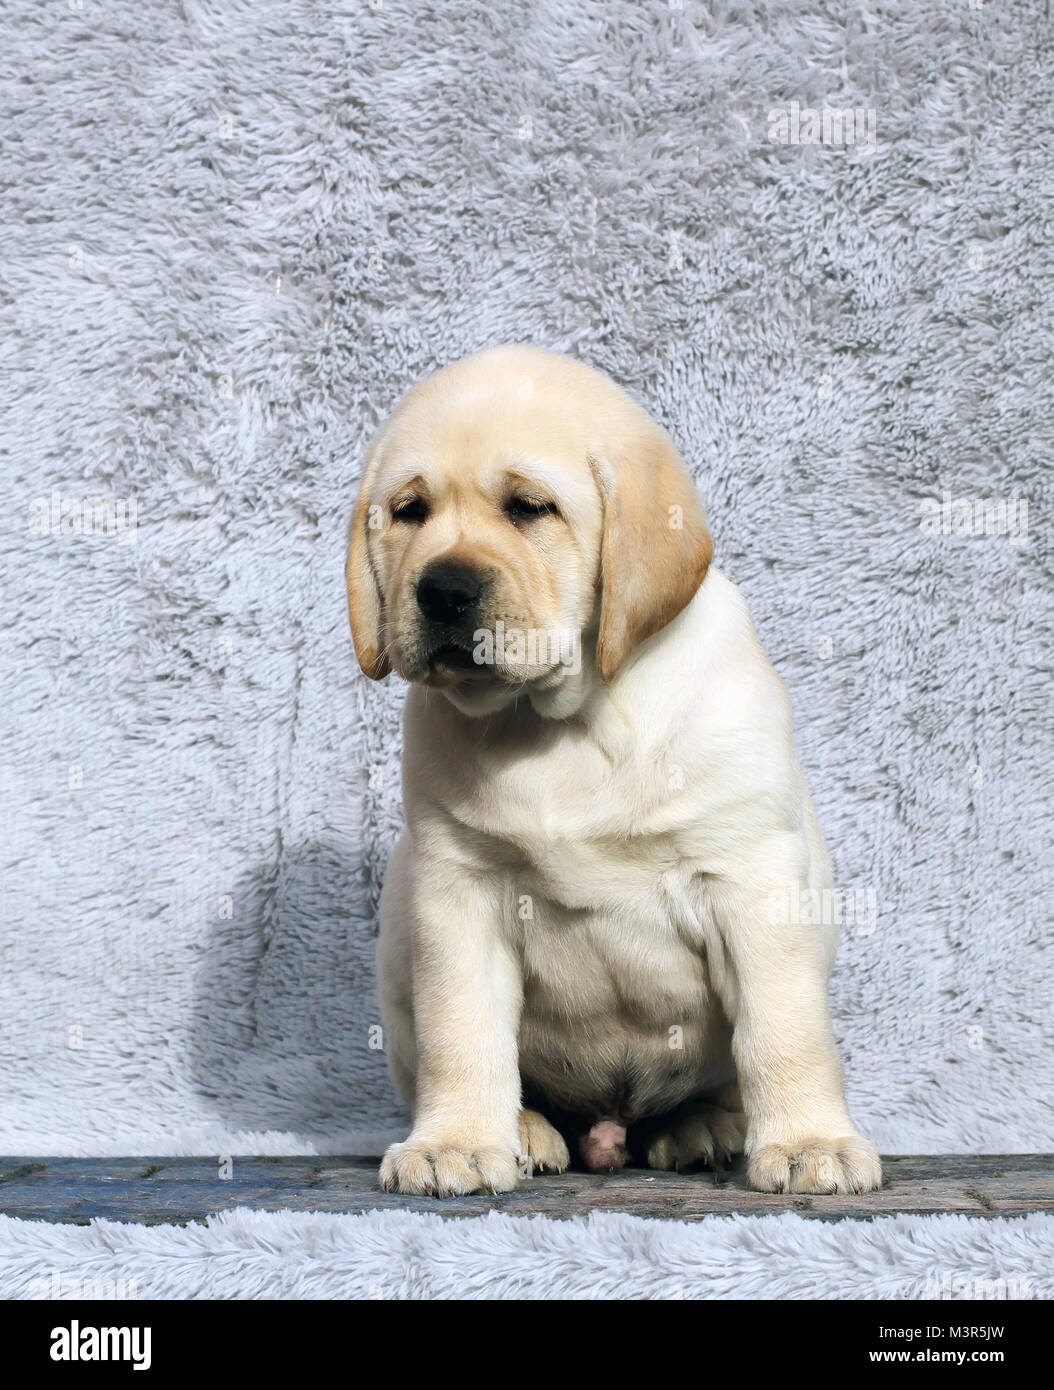 The Little Yellow Labrador Puppy Sitting On Grey Background Stock Photo Alamy